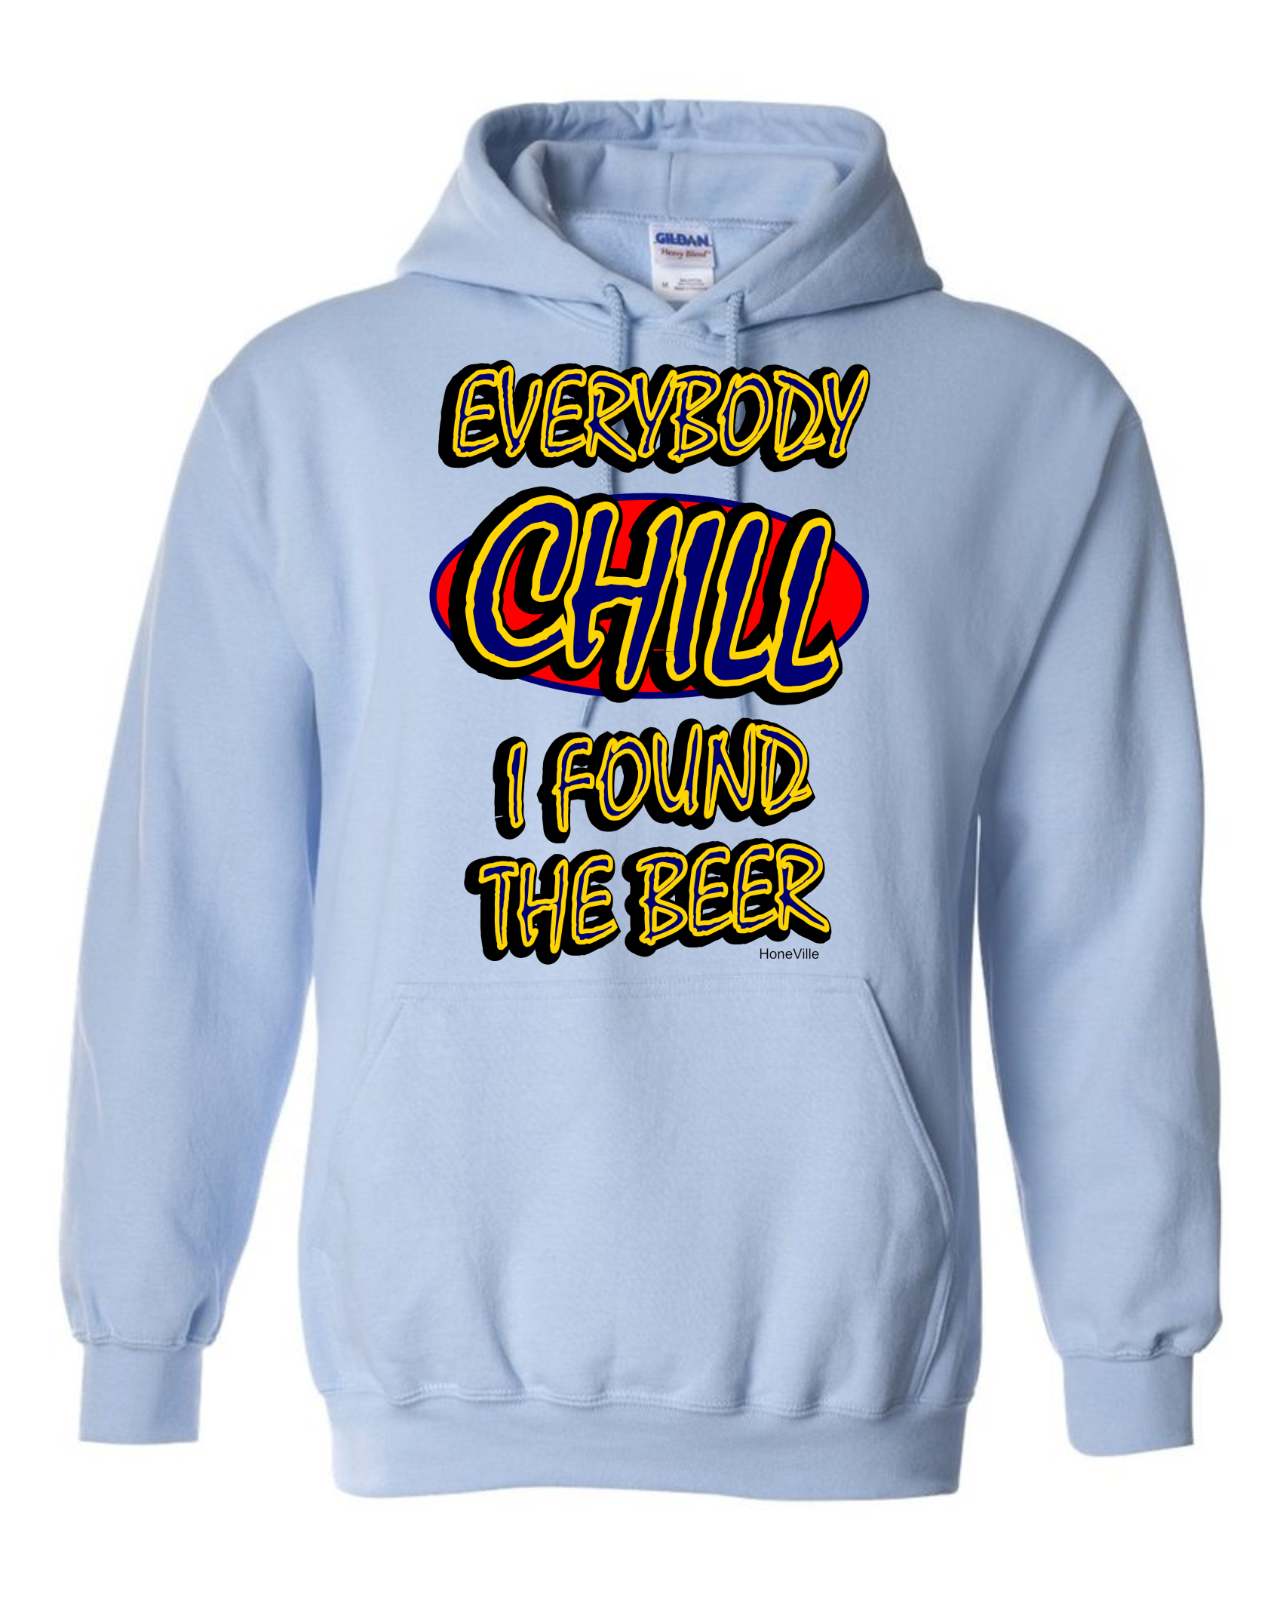 Black Chill Hoodie, XX-Large Netflix//Chill Hooded Sweatshirt//T-Shirt in Black Color